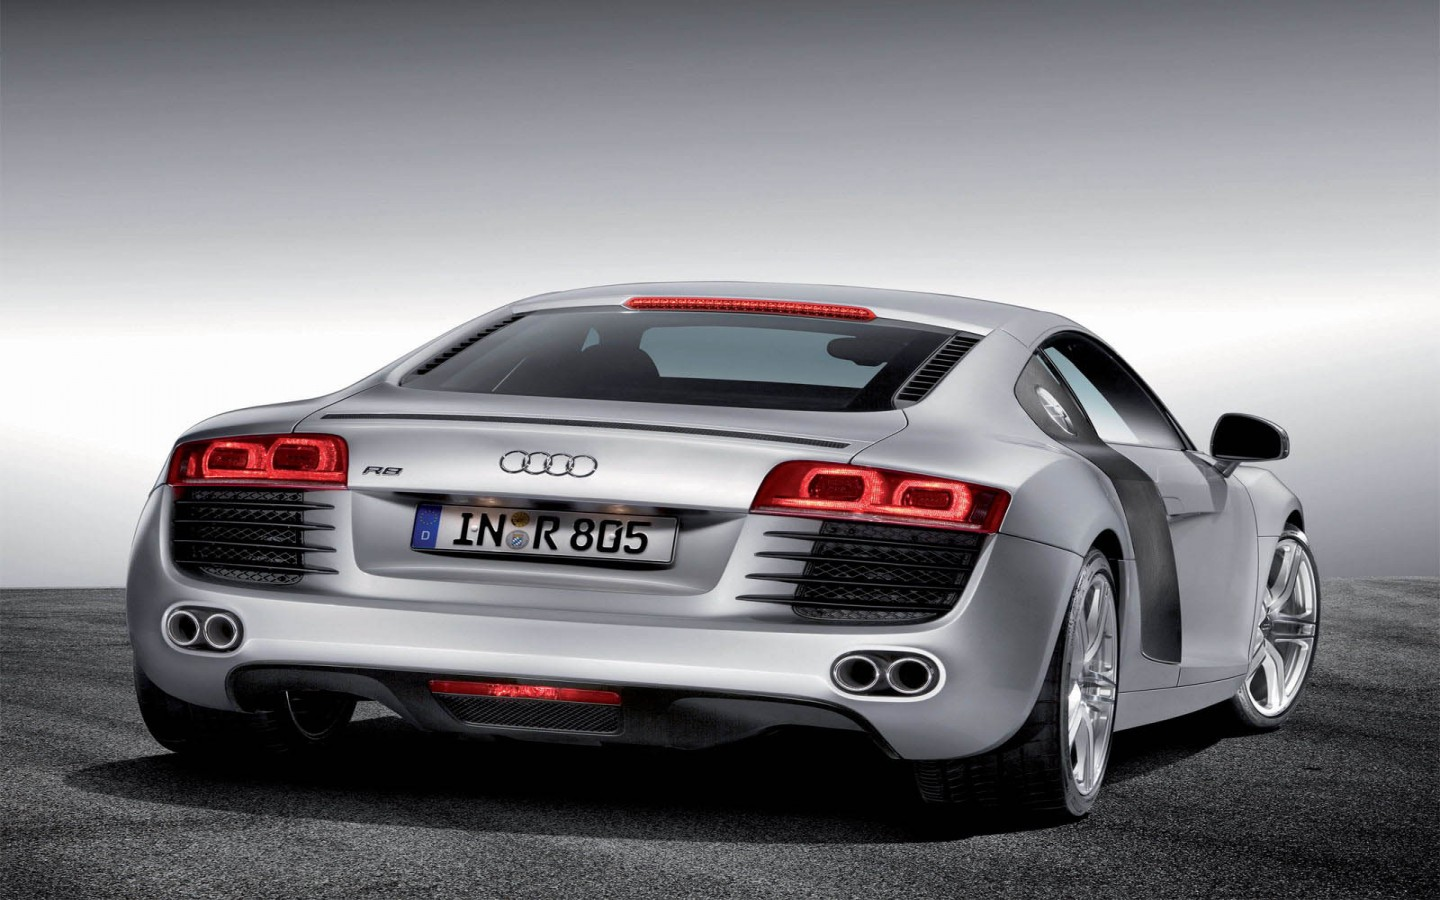 Hd Car Wallpapers Audi R8 Back View